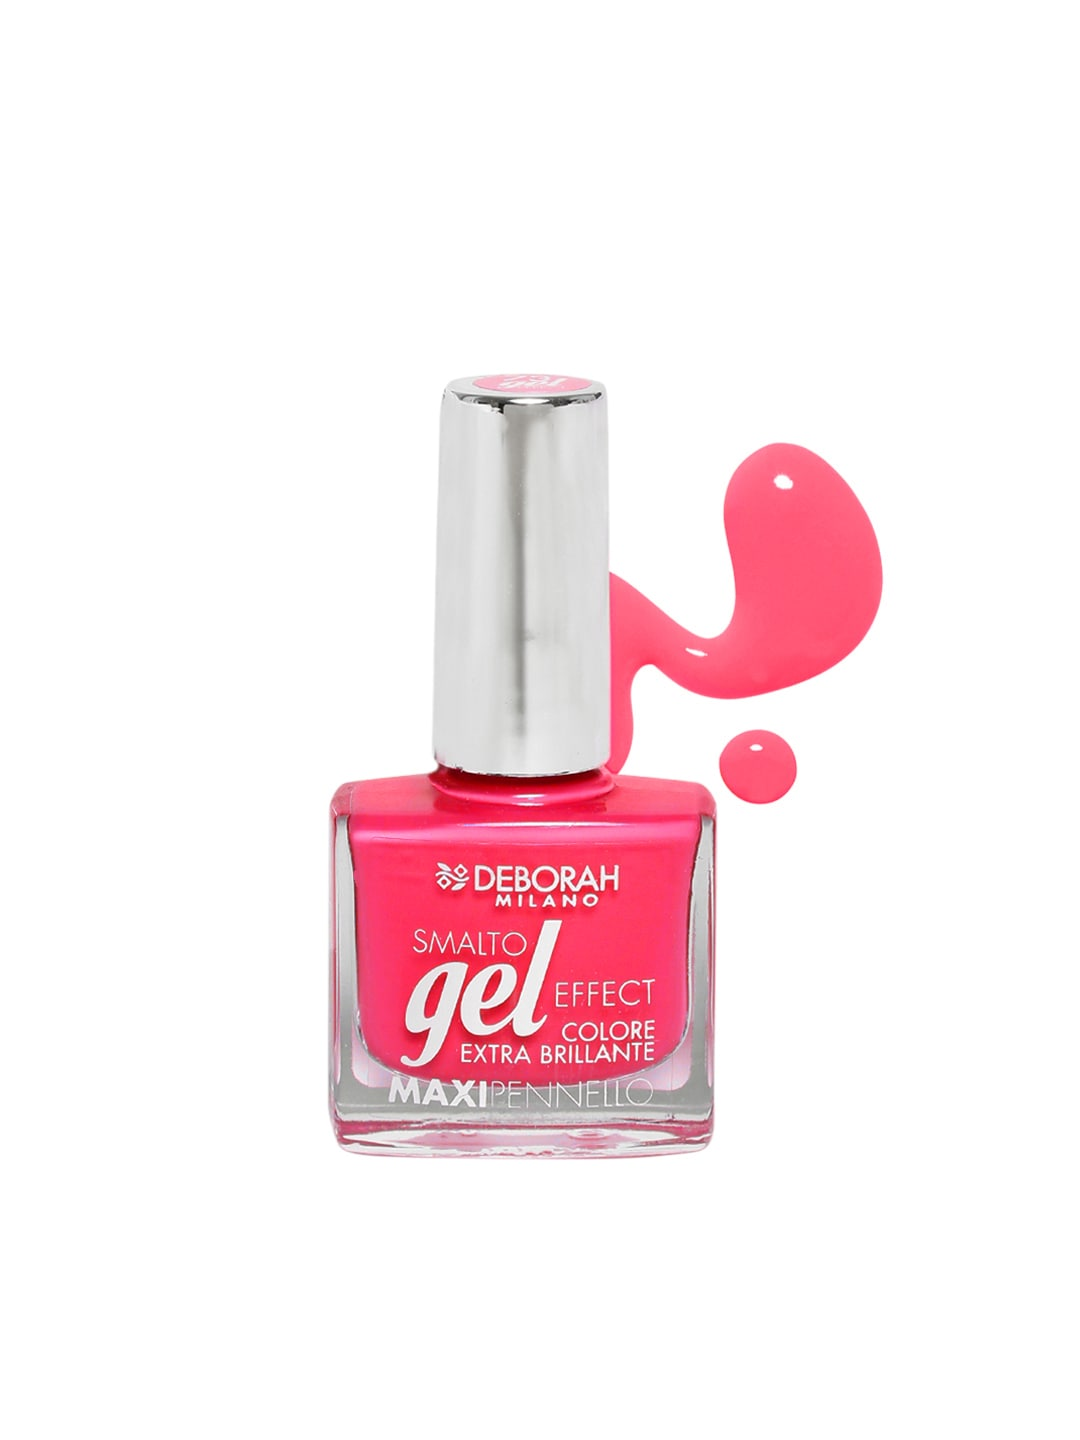 Deborah Nails - Buy Deborah Nails online in India